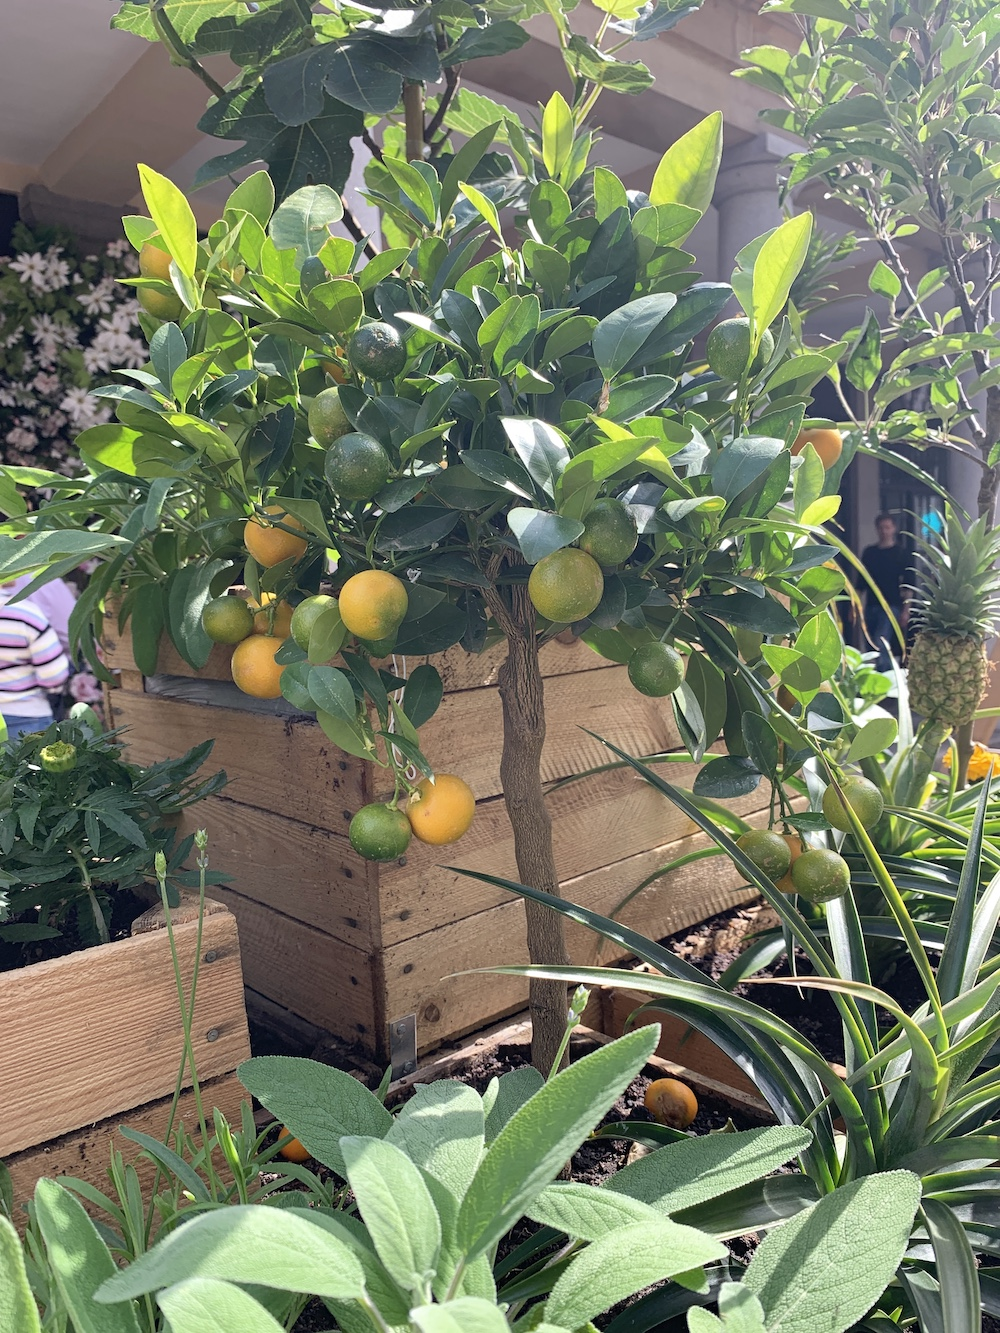 Crate Gardening for Small Spaces Lemon Tree #Garden #Gardening #SmallSpace #SmallSpaceGardening #ContainerGardening #VegetableGarden #HerbGarden #PorchGarden #PatioGarden